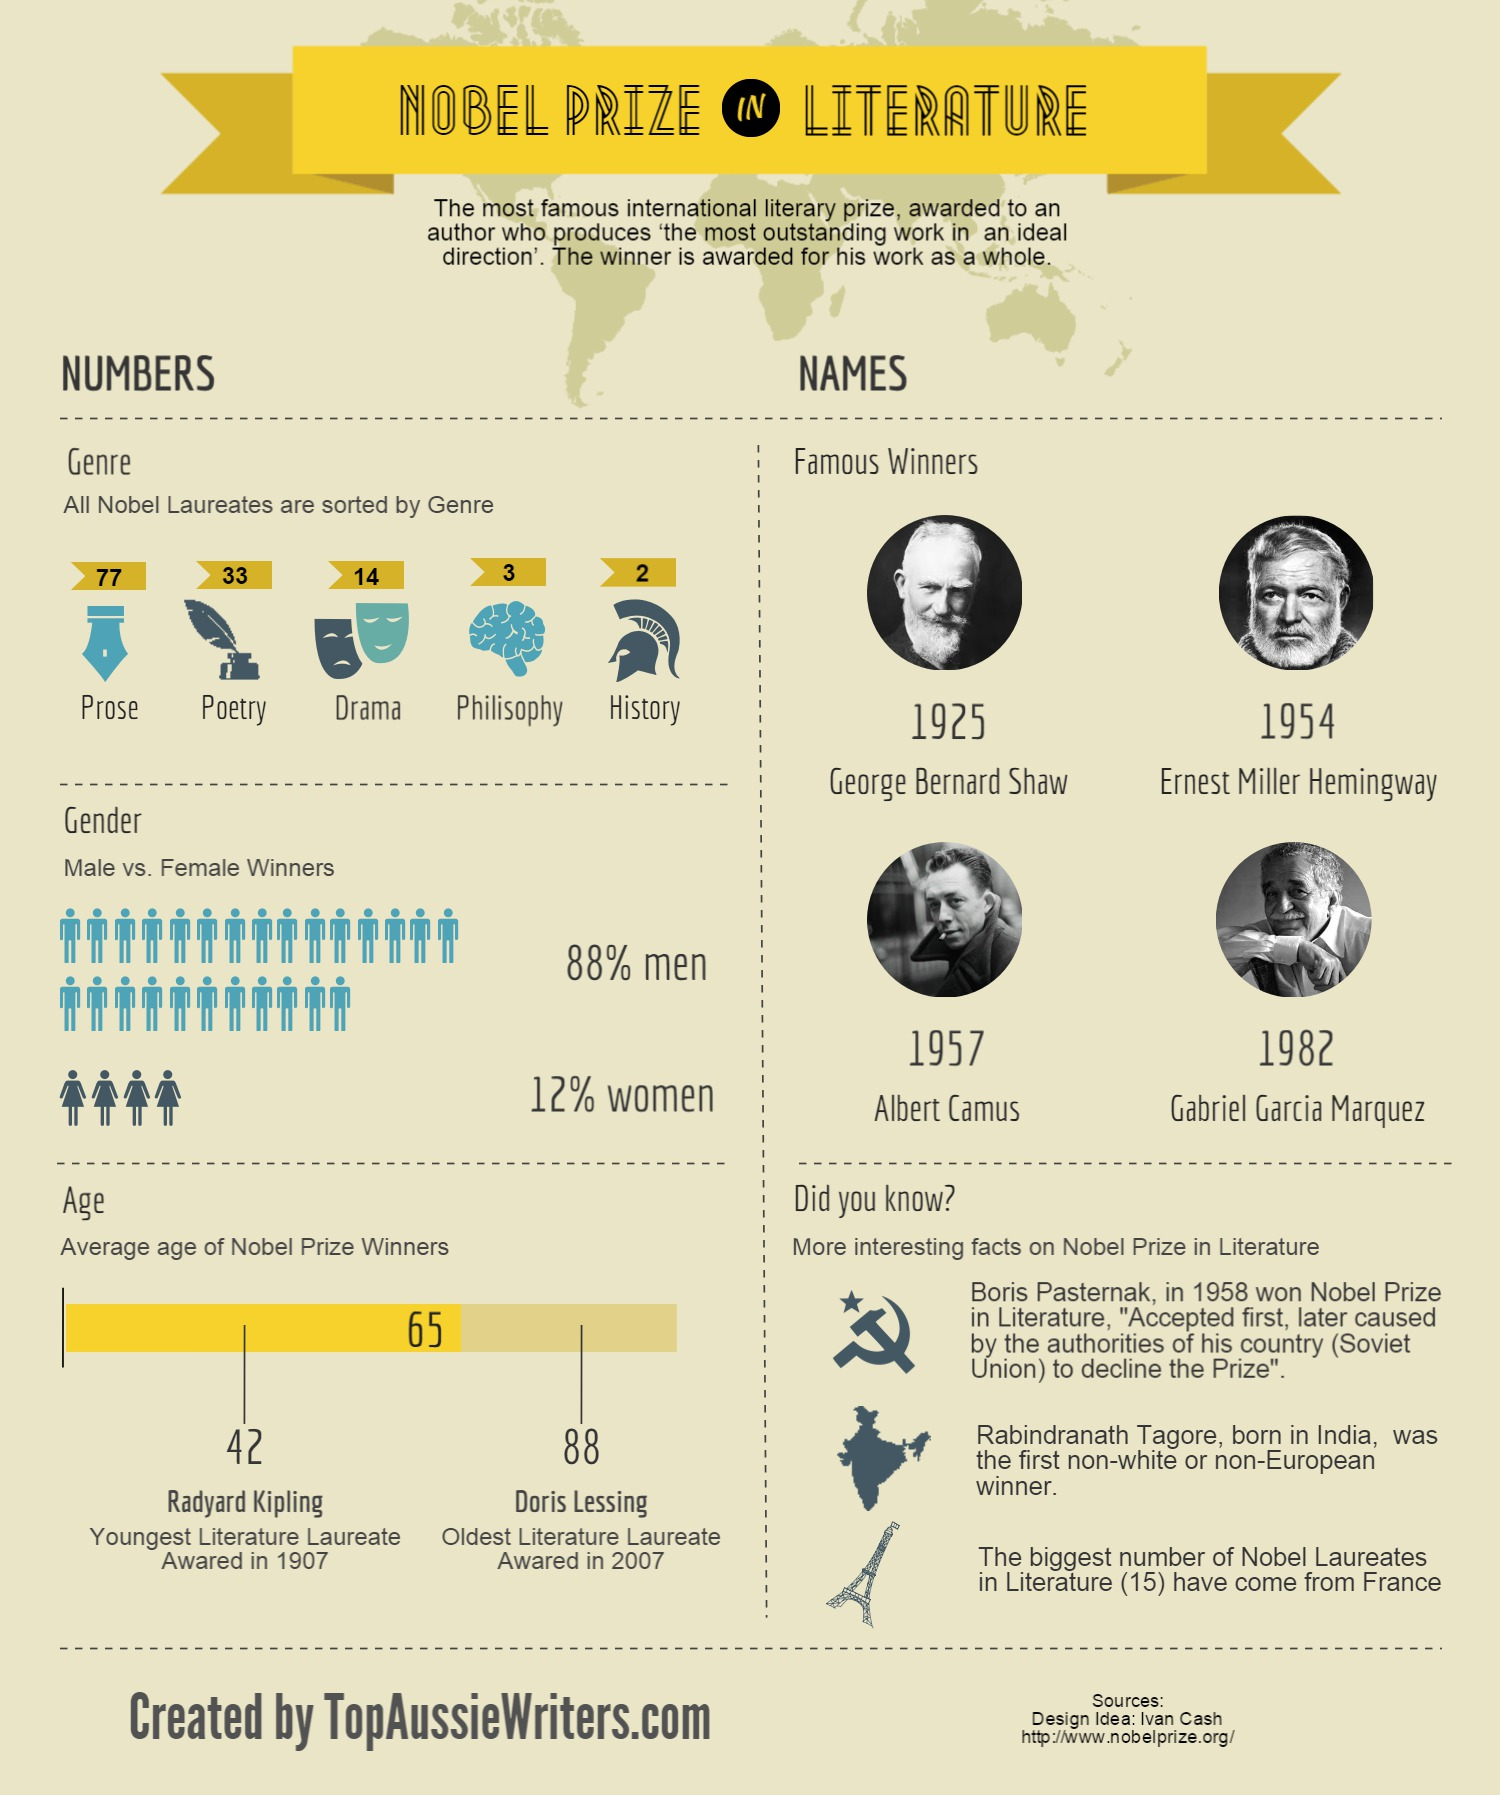 How Do You Win The Nobel Prize In Literature Infographic July 24 2015Writing Tips0 Comments